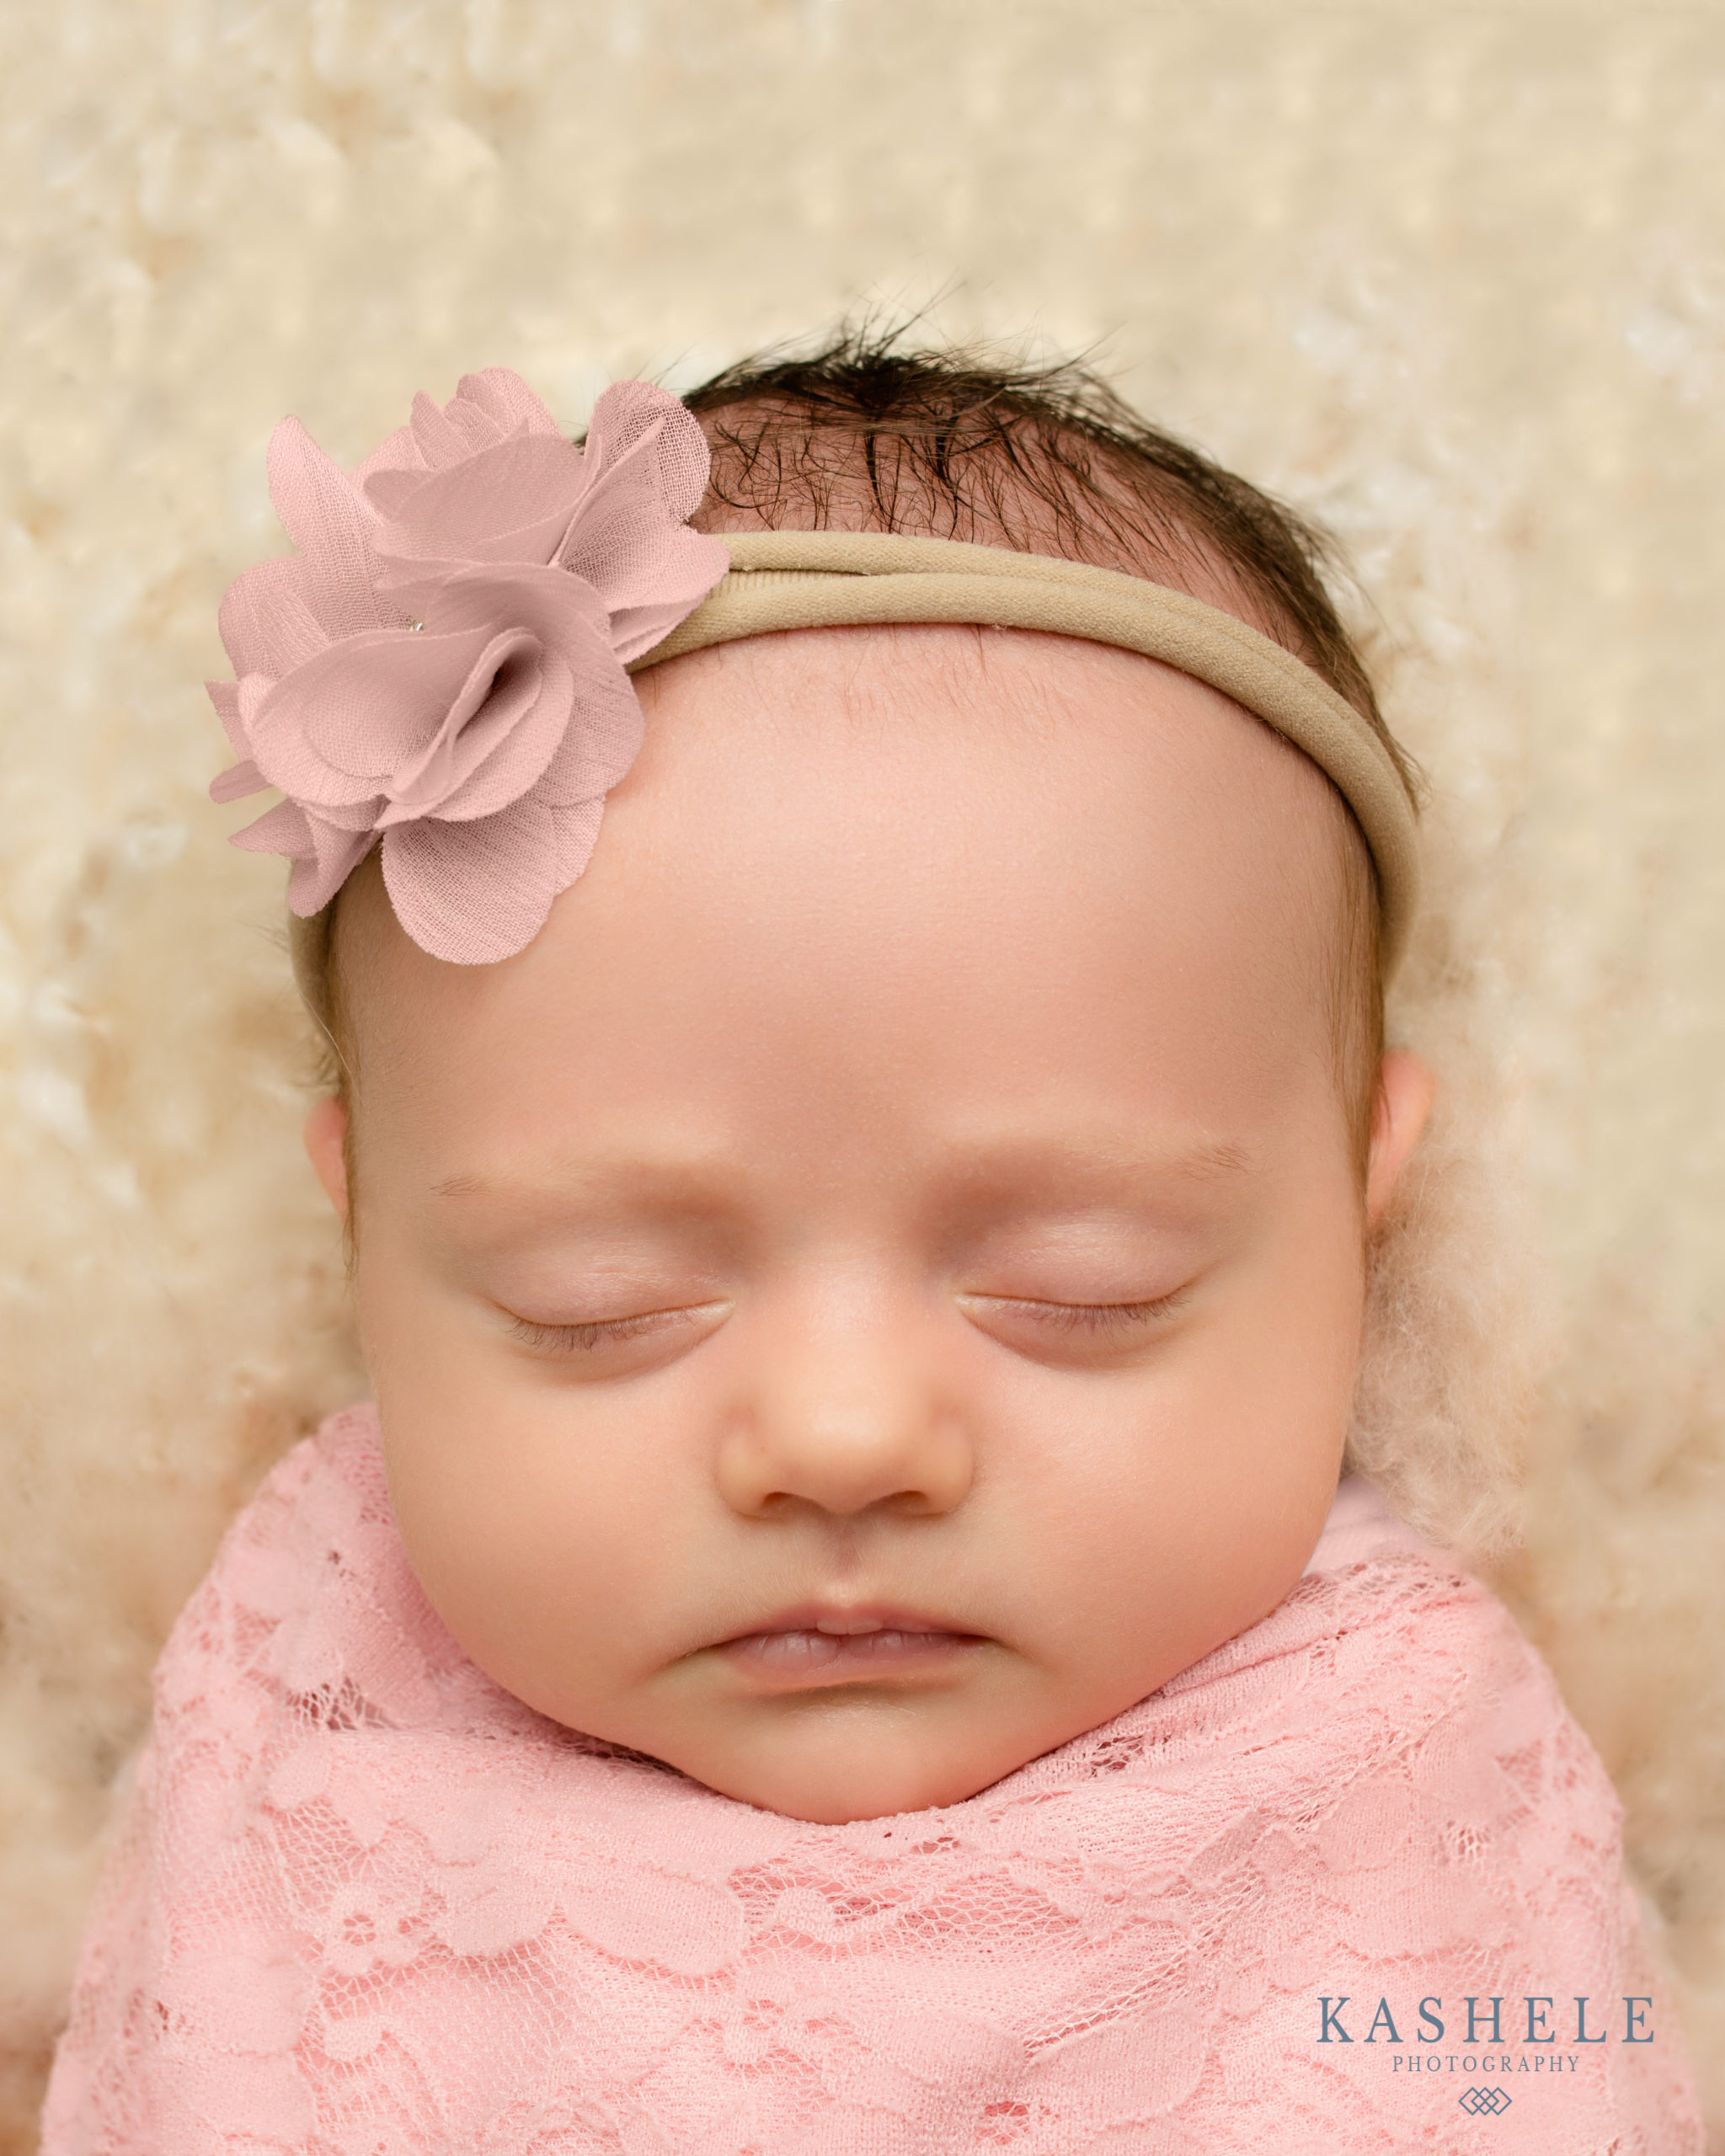 Completed portrait for newborn skin peeling professional photo editing post